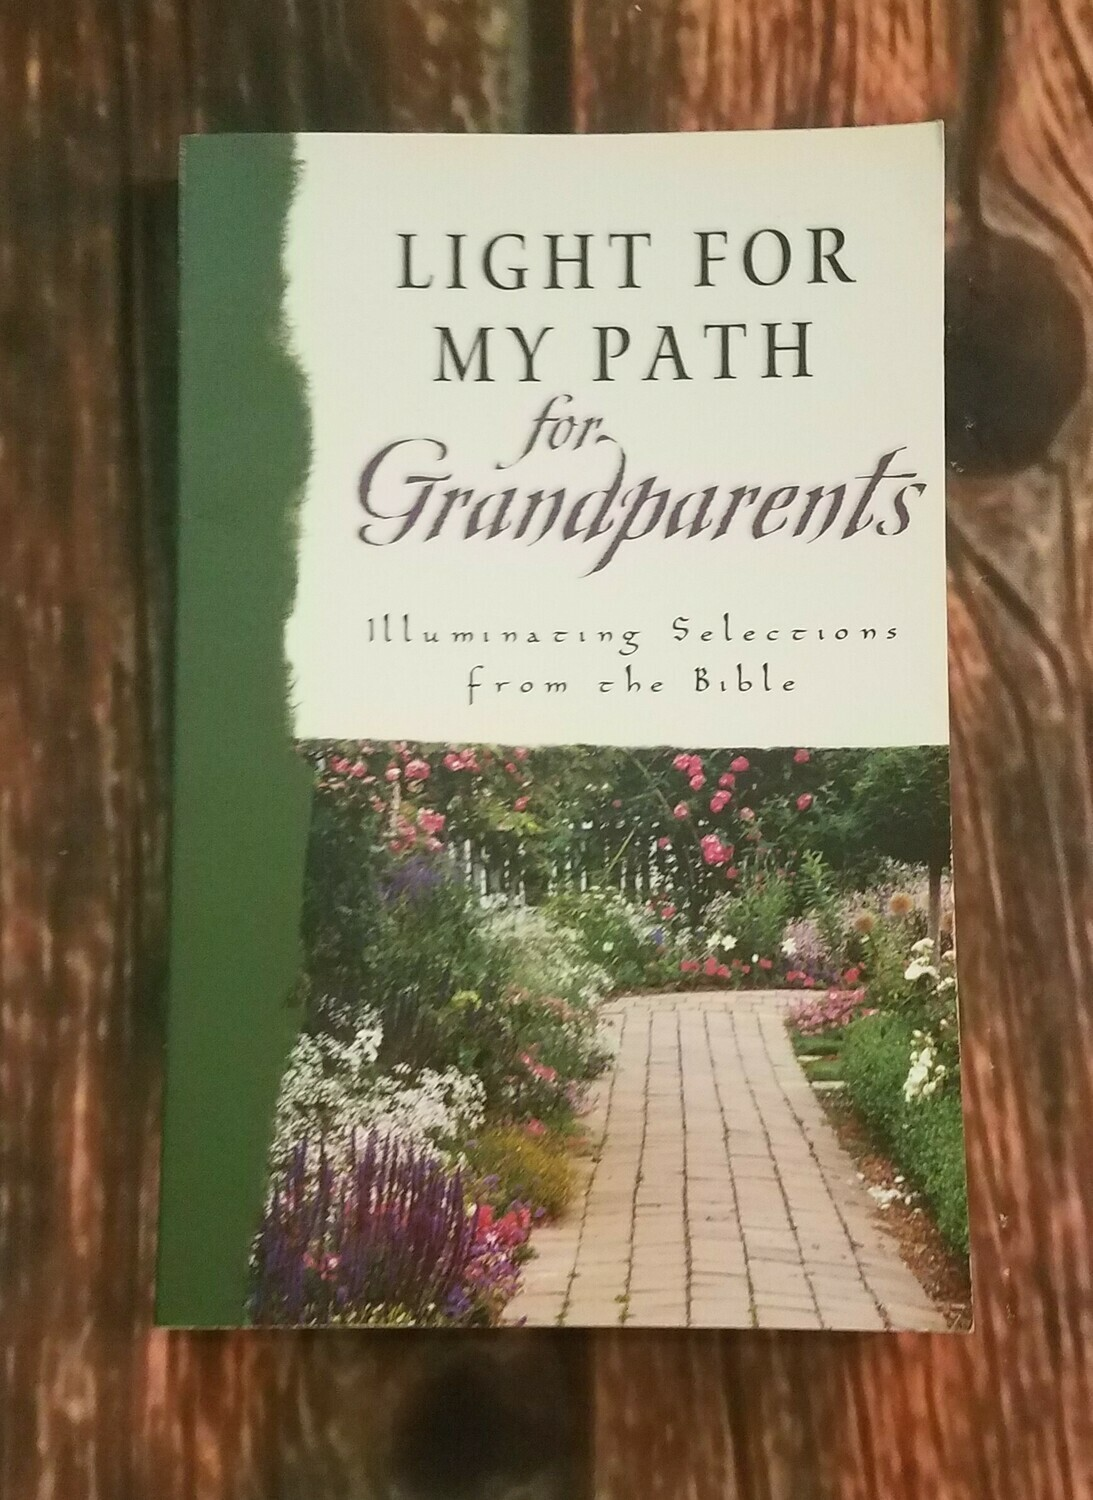 Light for My Path for Grandparents by Barbour Publishing